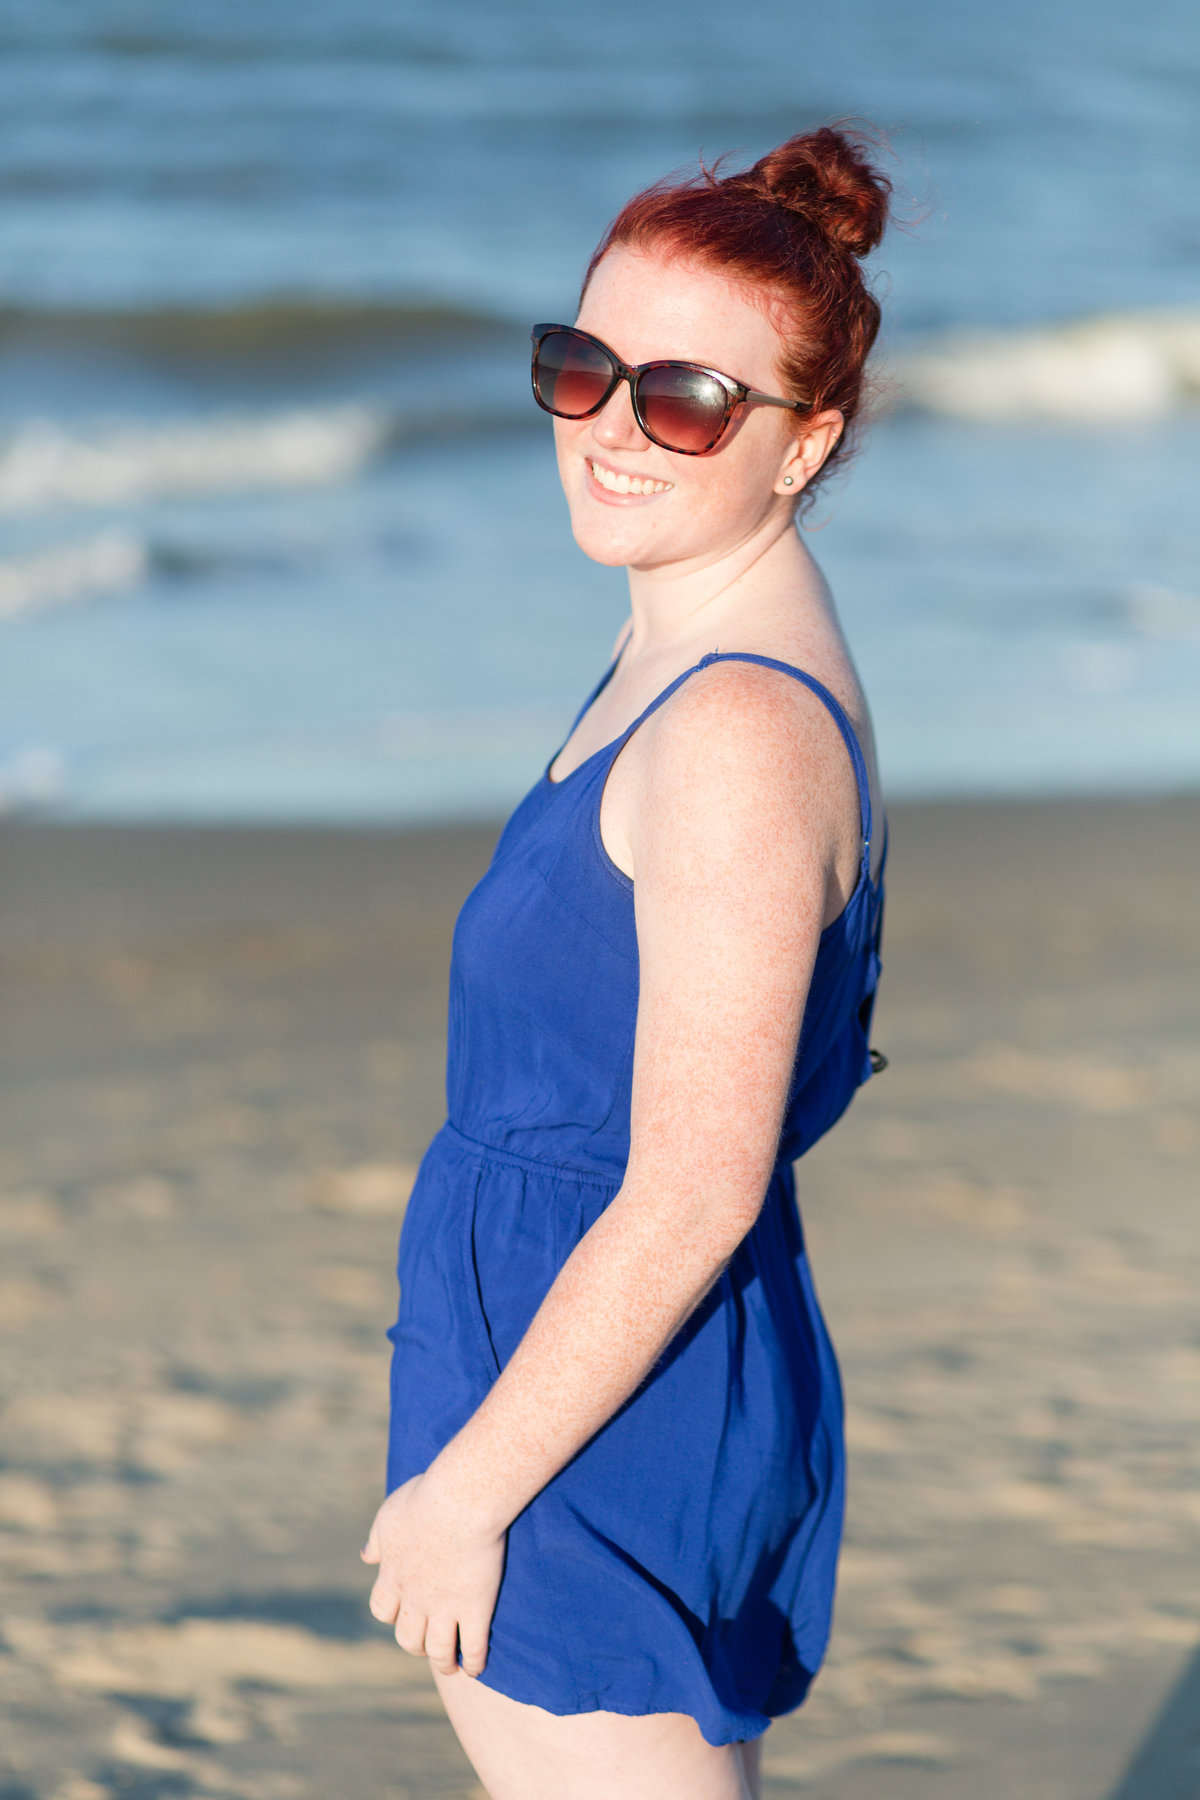 virginia_beach_portrait_photographer-041